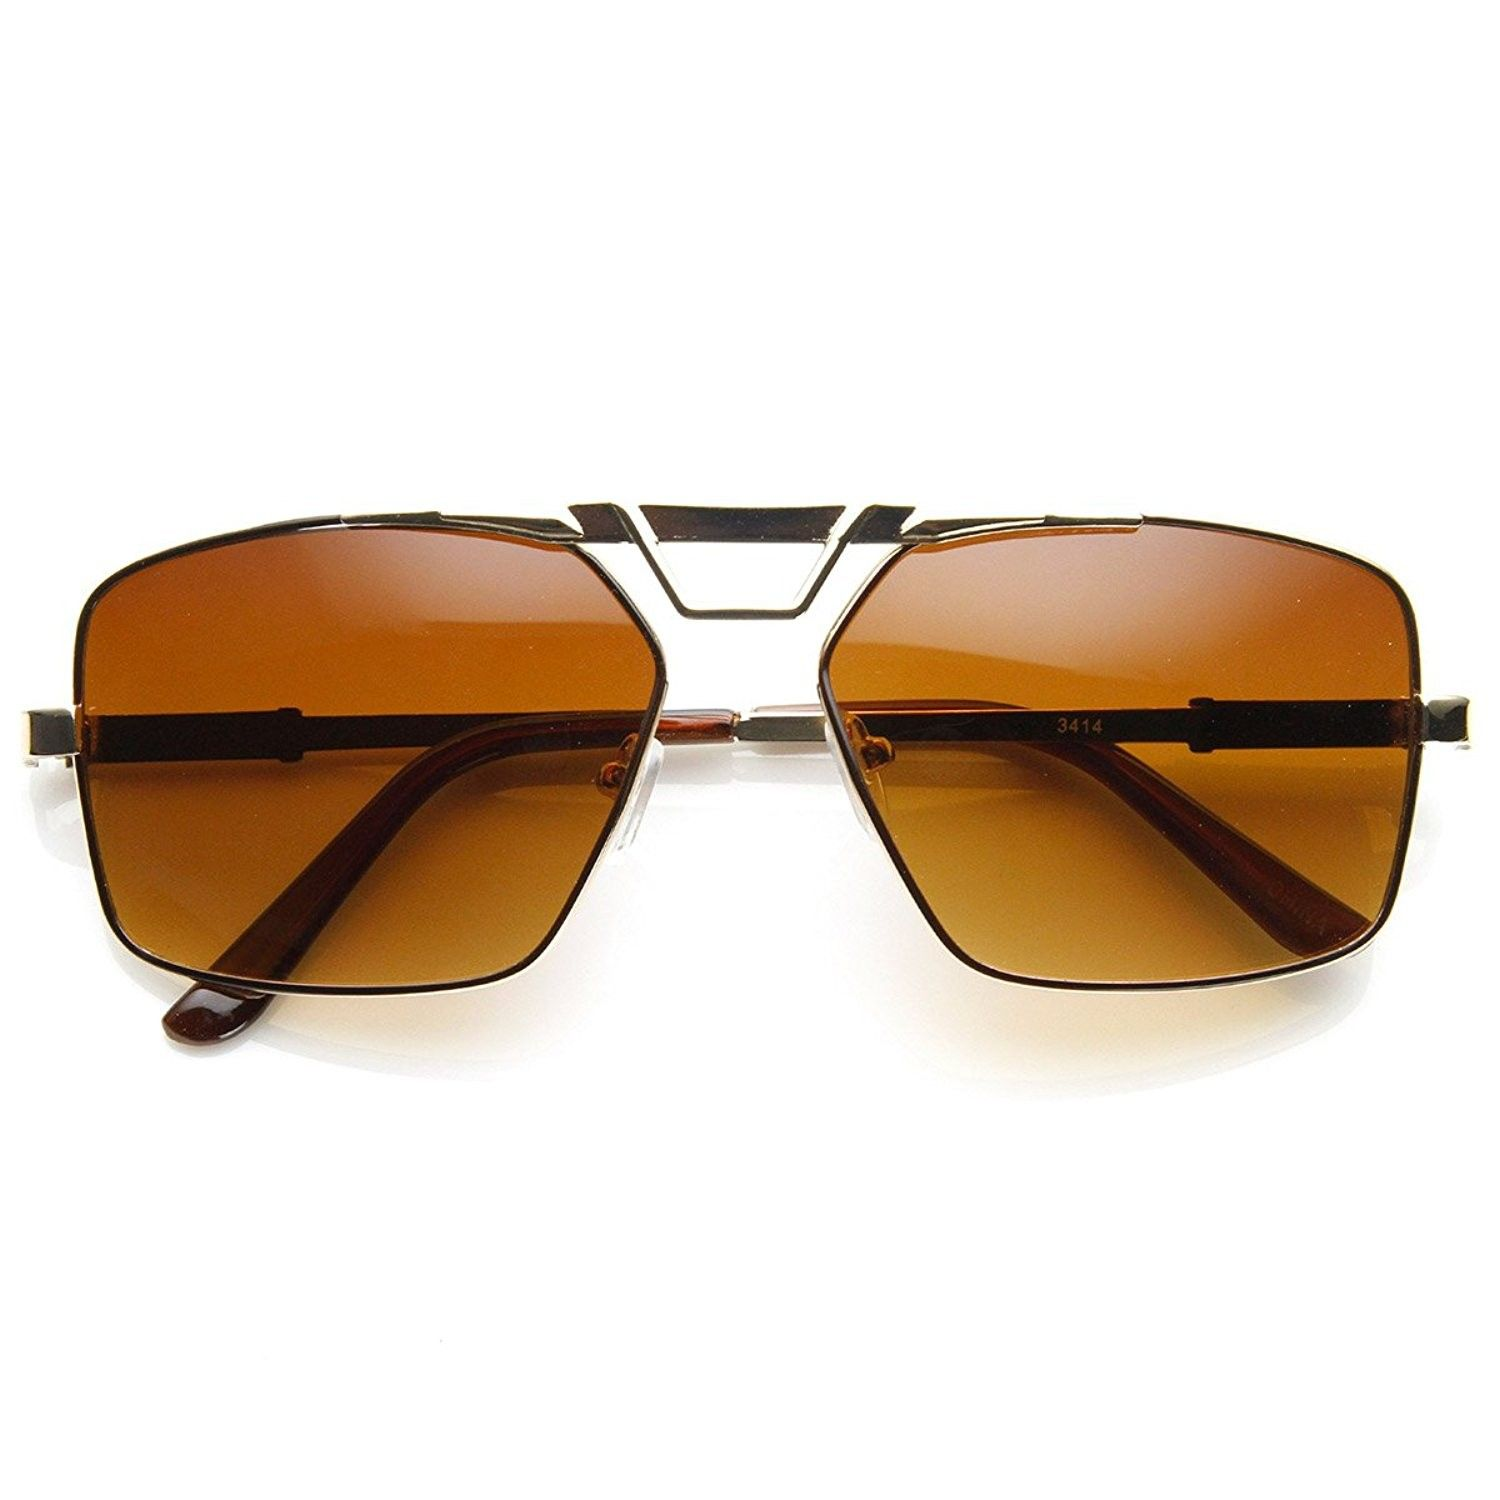 d75593f70d Modern Fashion Metal Square Frame Aviator Sunglasses - Gold Amber -  CF11G3ADF9P-Women s Sunglasses